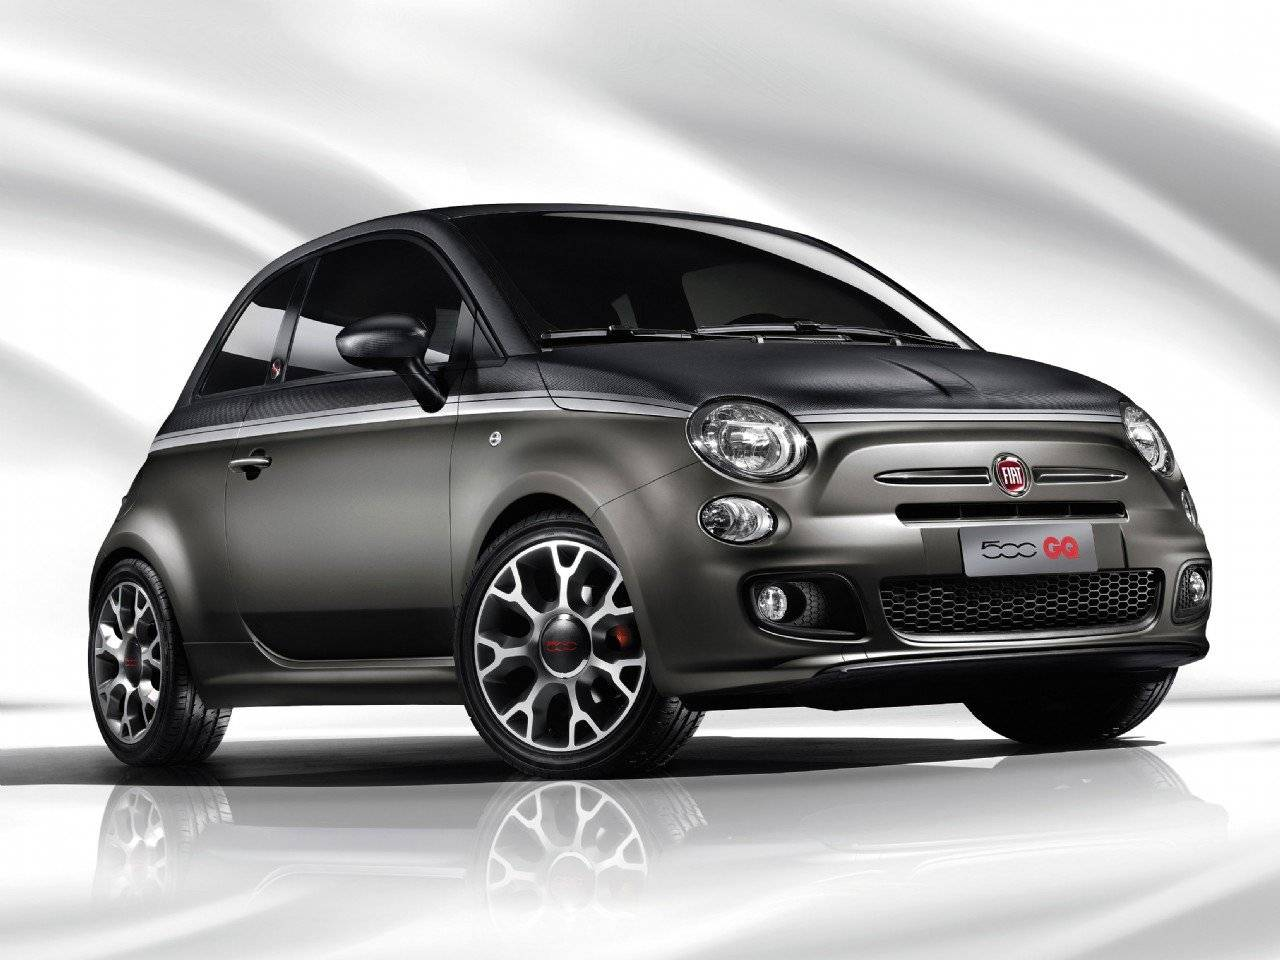 fiat 500 gq speciaal voor de hippe man autonieuws. Black Bedroom Furniture Sets. Home Design Ideas